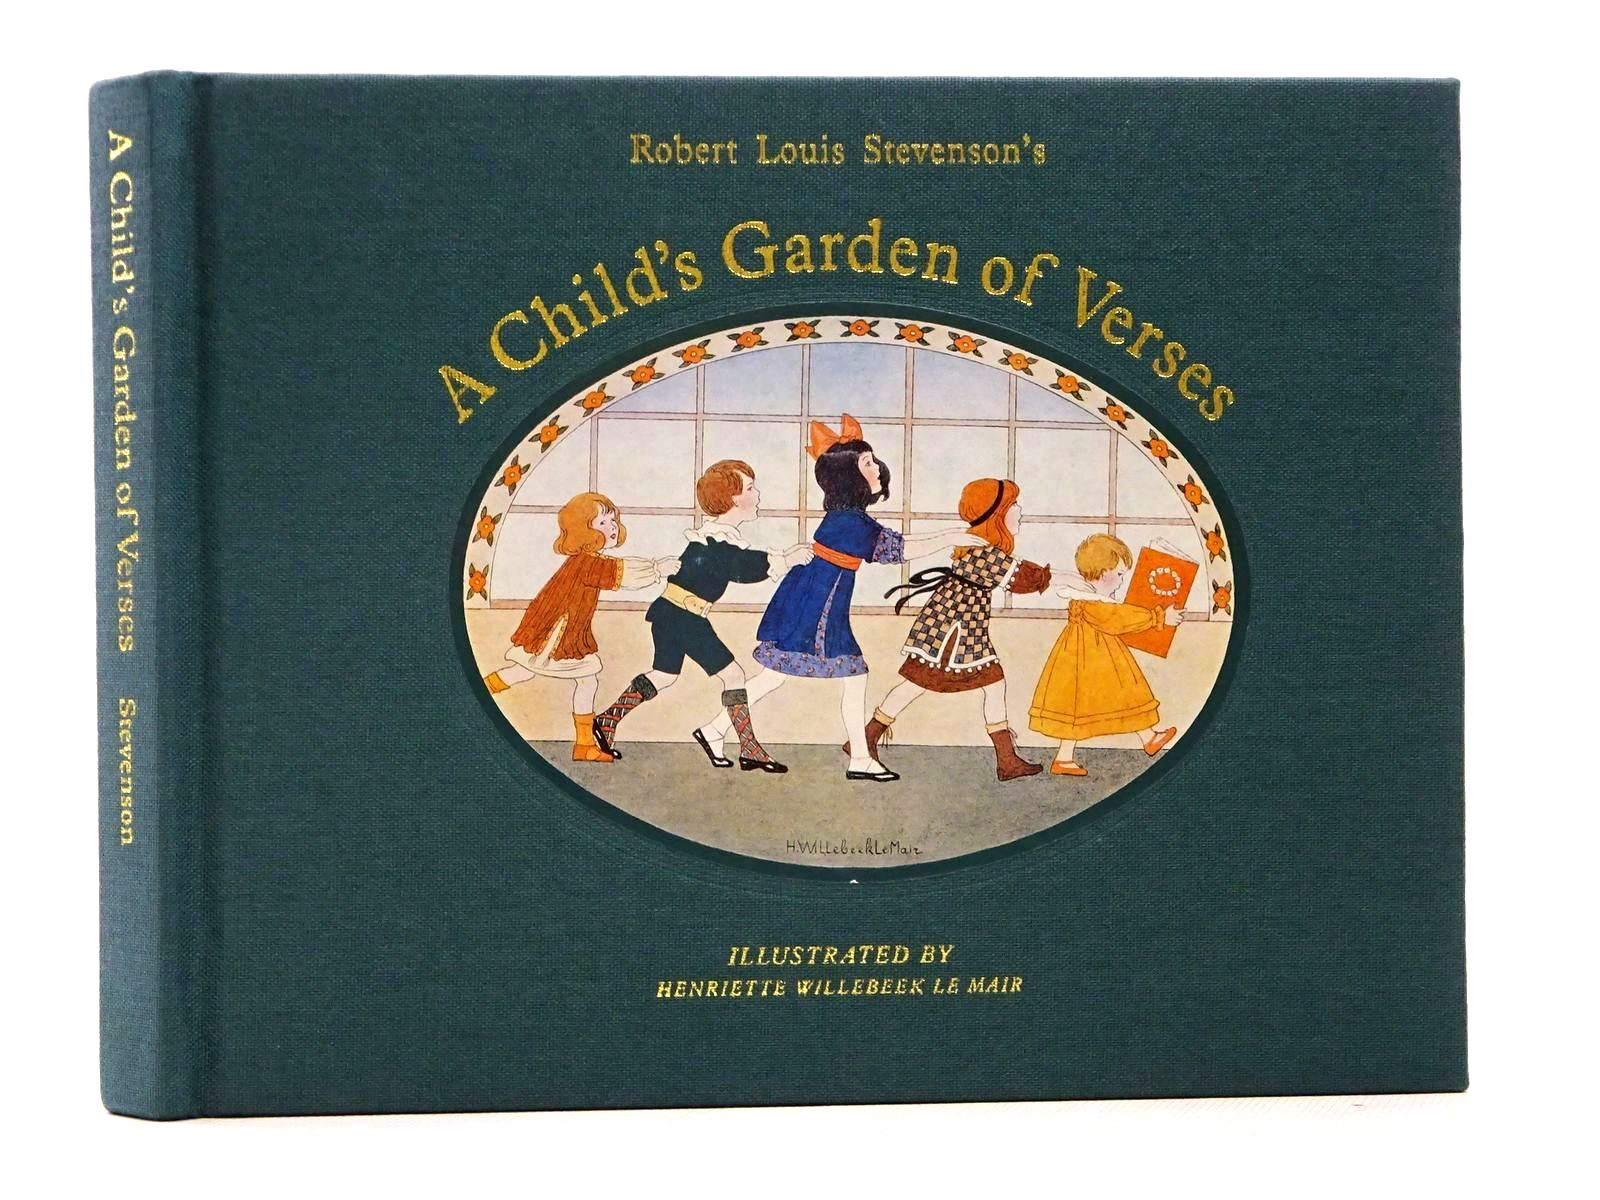 Photo of A CHILD'S GARDEN OF VERSES written by Stevenson, Robert Louis illustrated by Willebeek Le Mair, Henriette published by Gallery Childrens books (STOCK CODE: 1317245)  for sale by Stella & Rose's Books